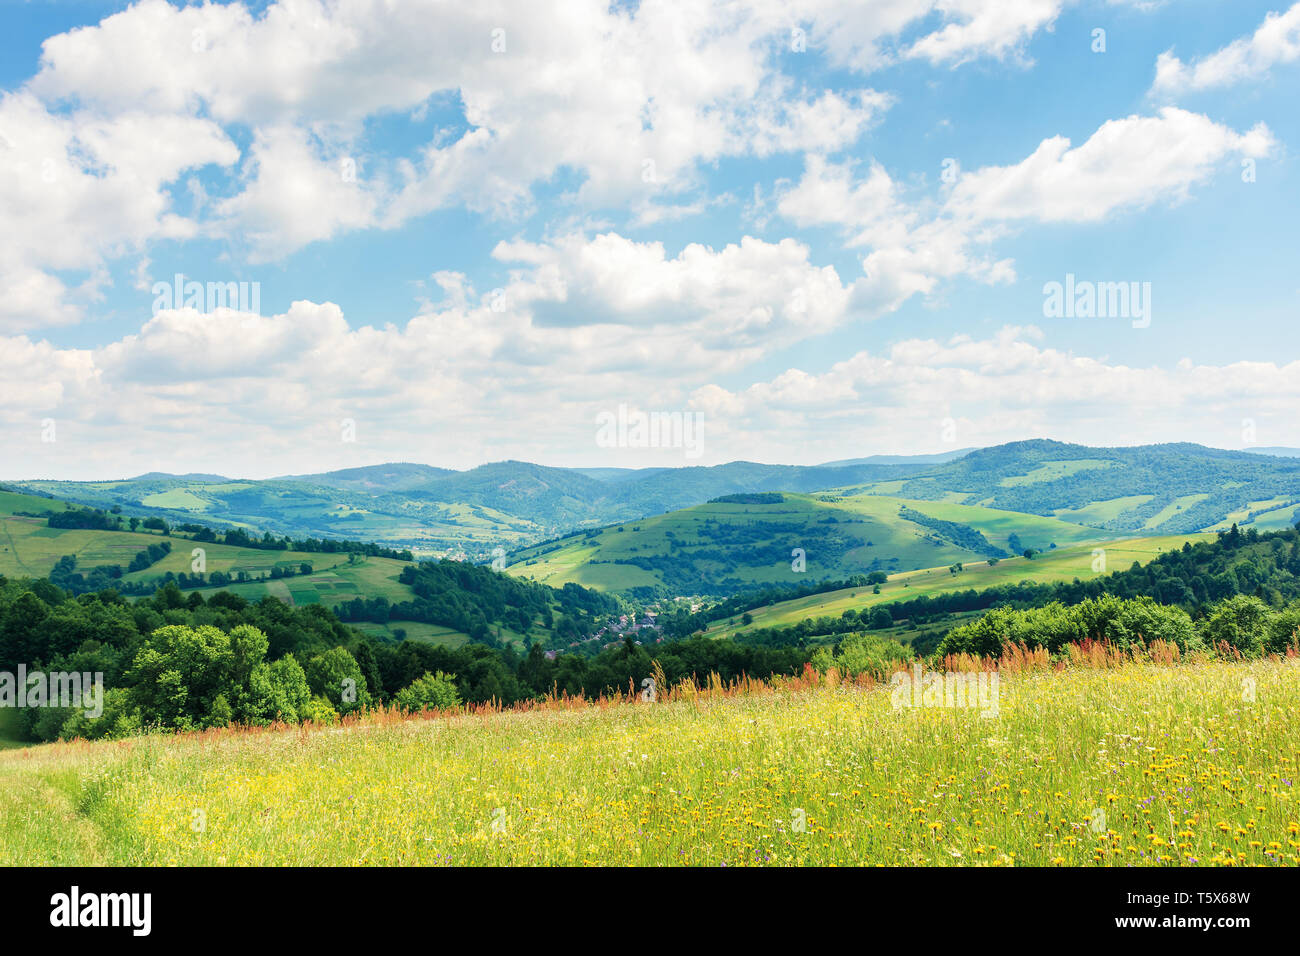 beautiful summer countryside in mountains. wonderful sunny day scenery. grassy rural fields and meadows with wild herbs. hills and mountains in the di - Stock Image